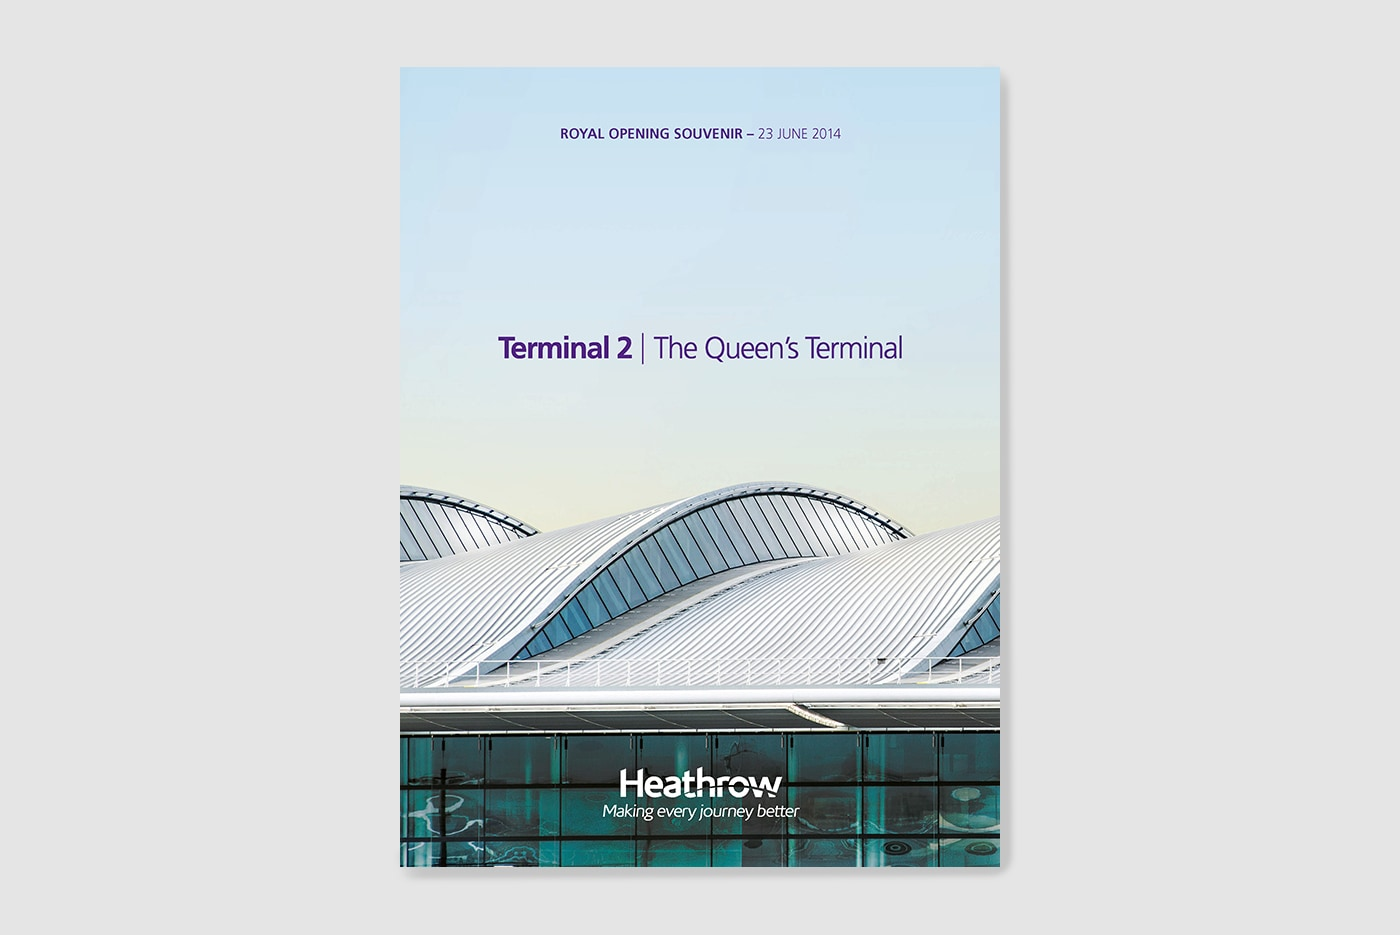 Heathrow Terminal 2 opening